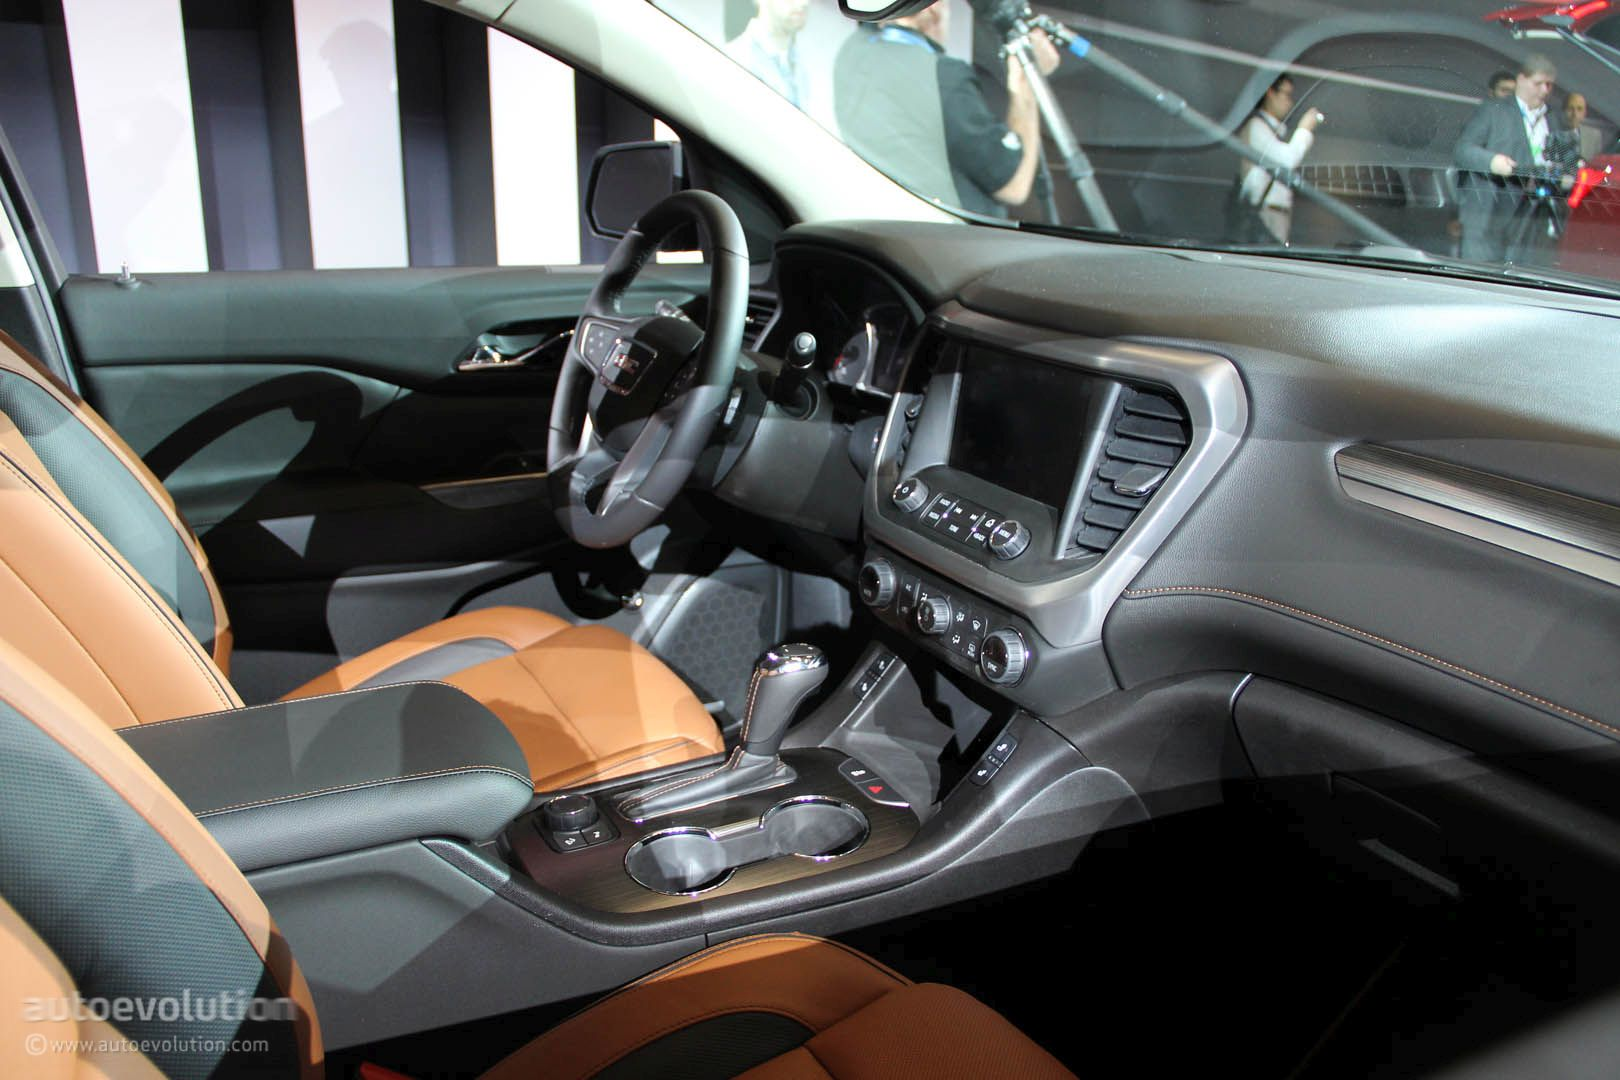 2017 gmc acadia uses detroit for downsizing denali and all terrain offered autoevolution for Gmc acadia denali 2017 interior